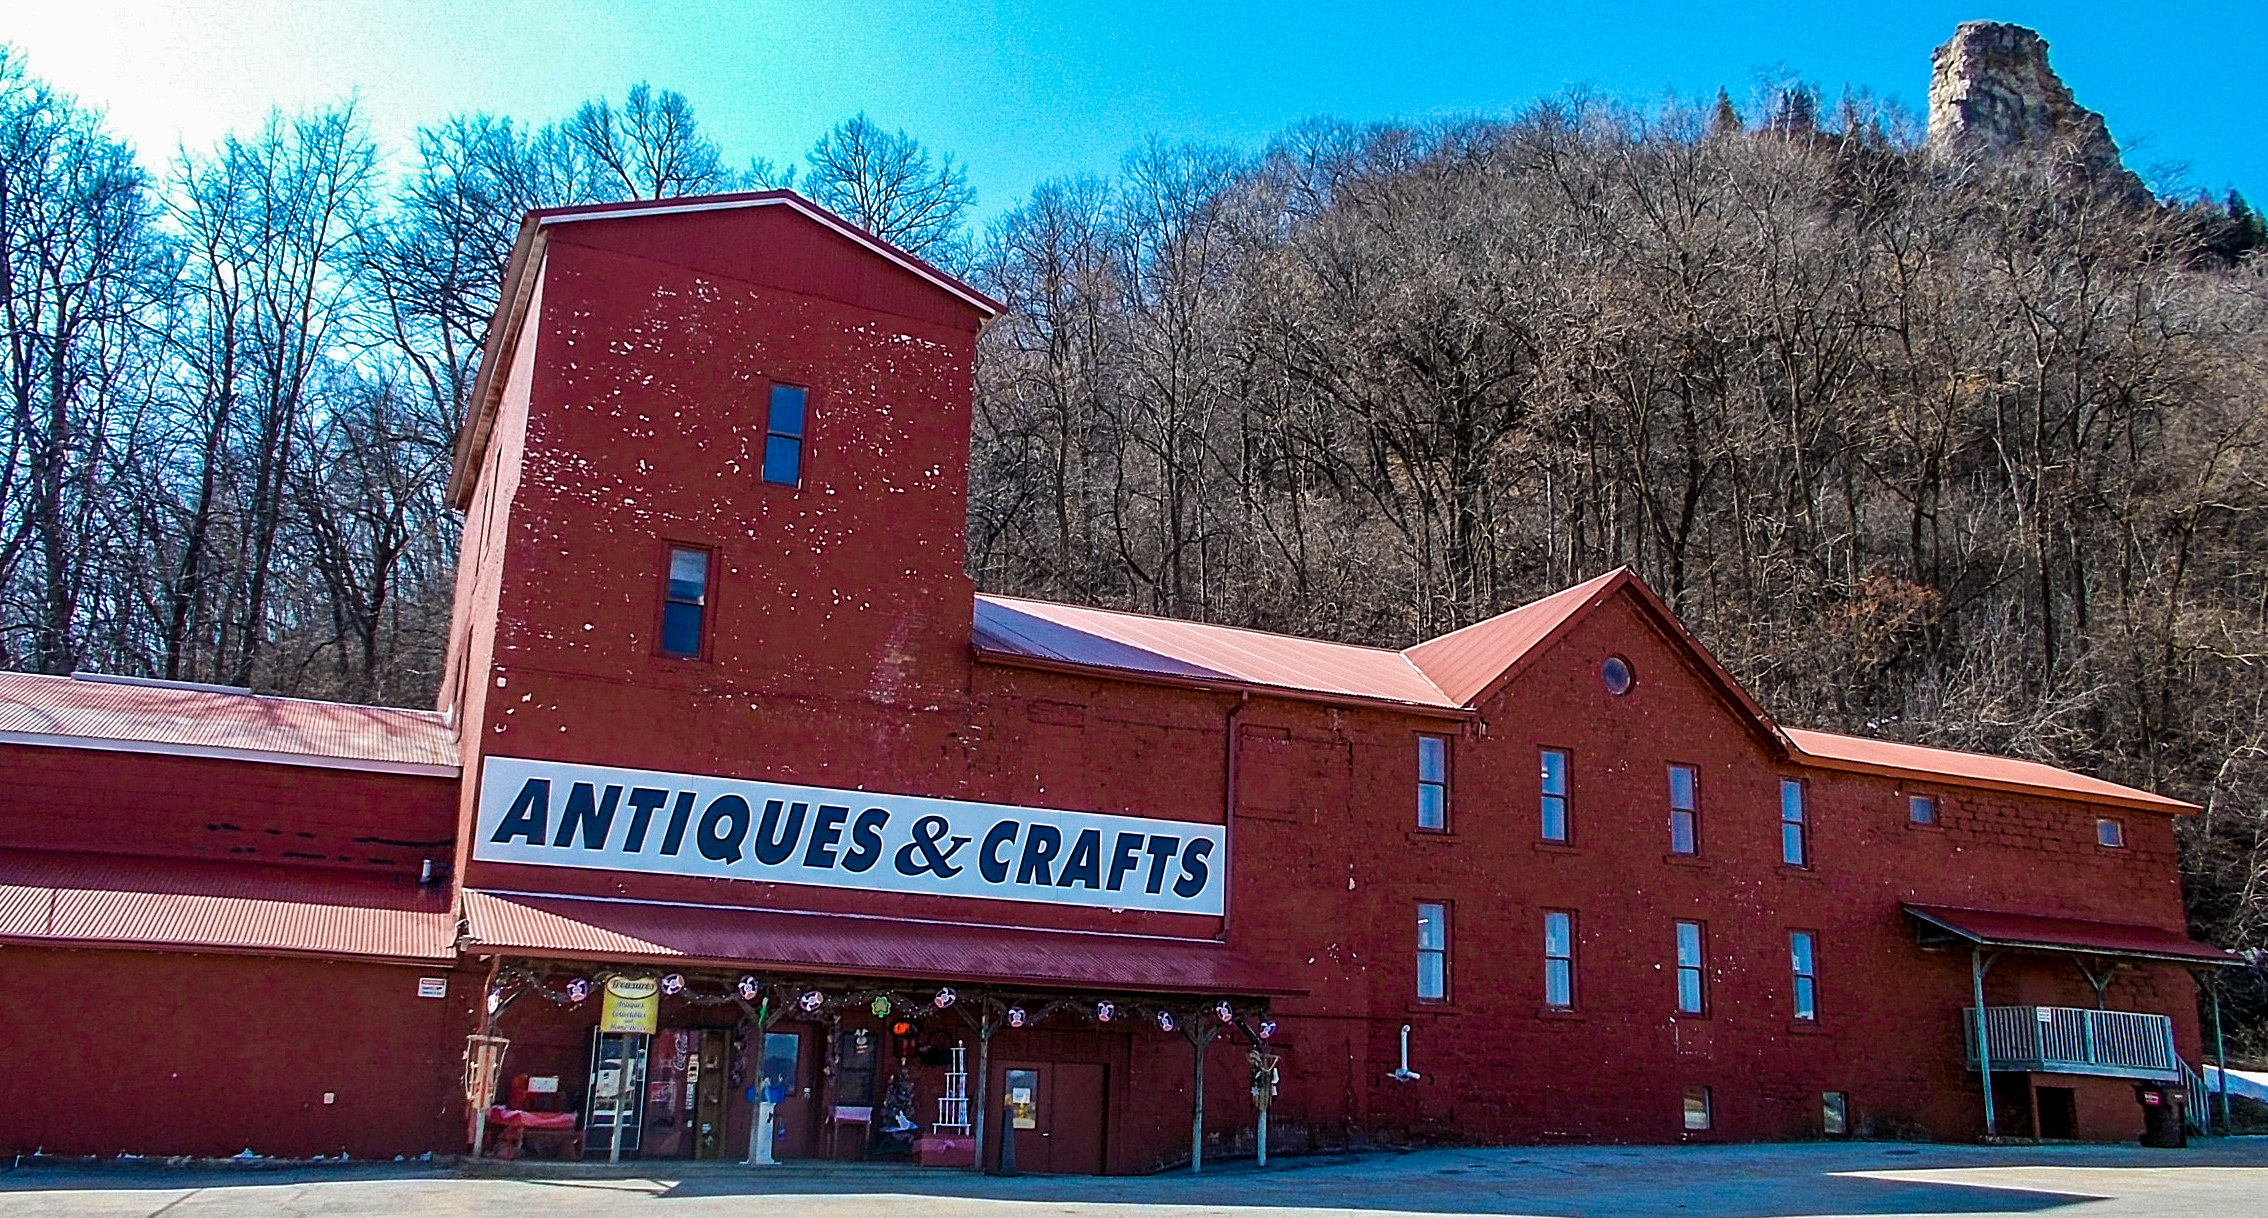 treasures-outside-march-cropped-treasures-under-sugar-loaf-winona-minnesota-antiques-collectibles-crafts